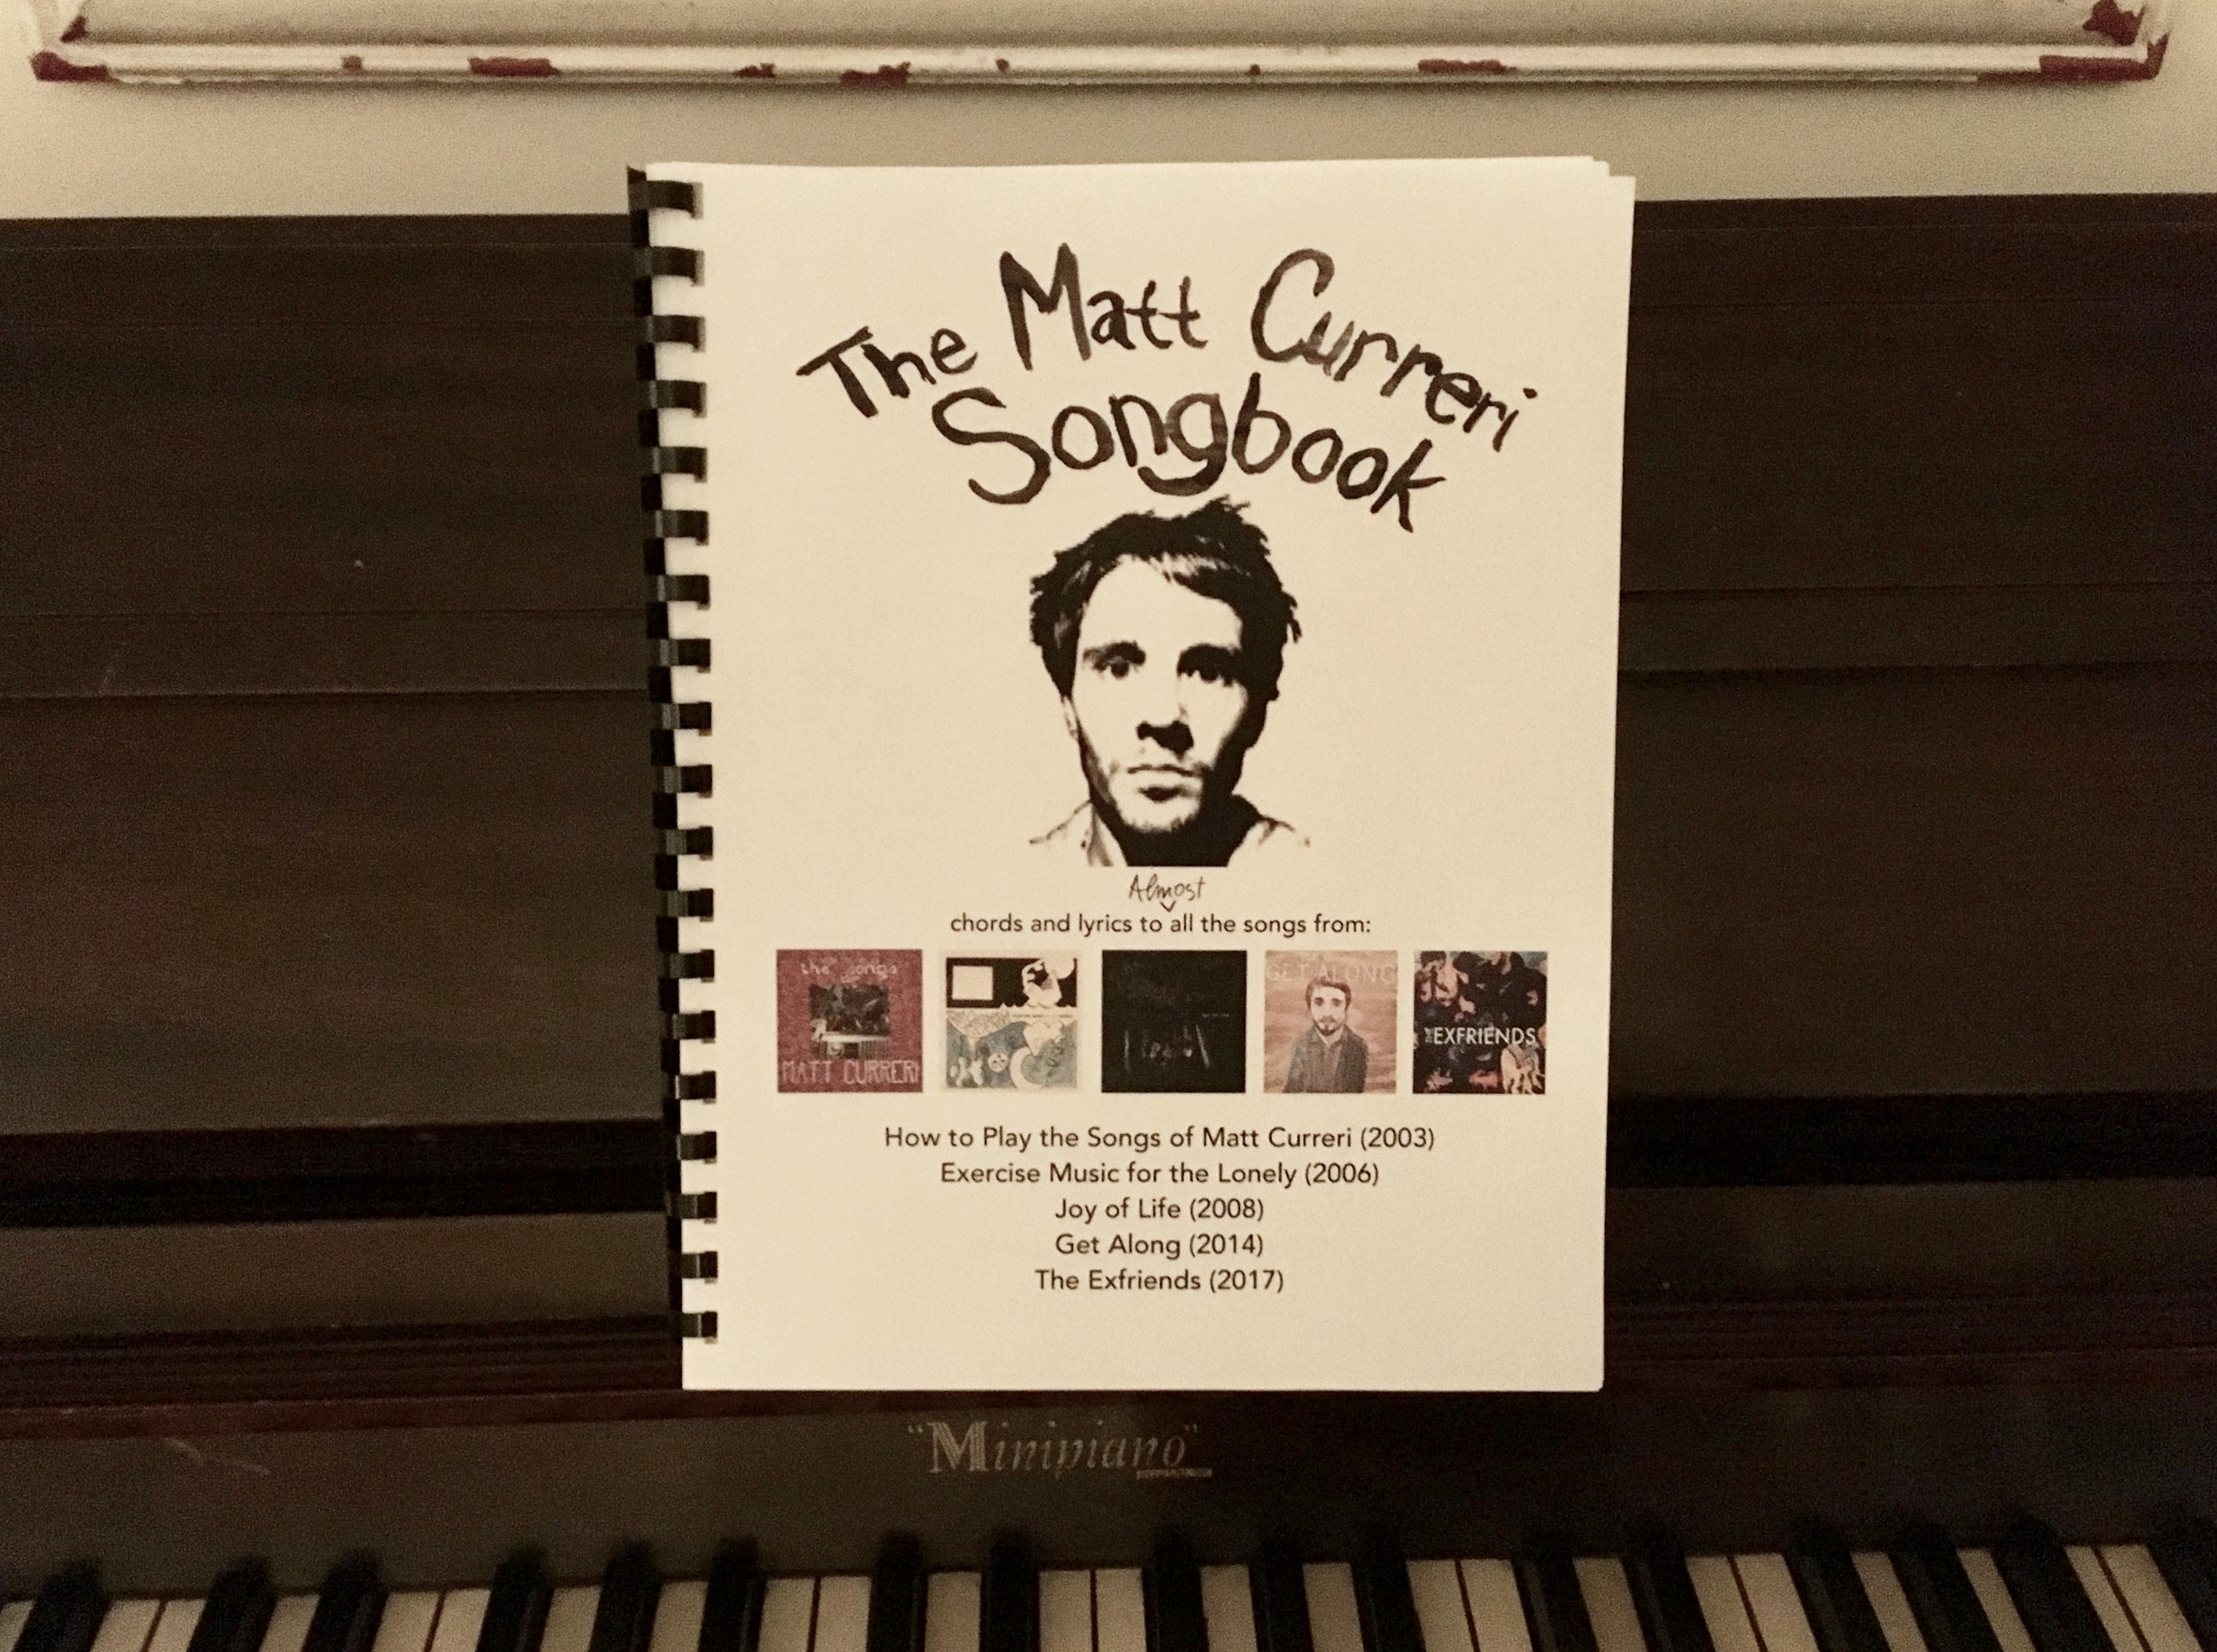 Click to Order. - Contains chords and lyrics to (almost) all the songs (minus a couple early instrumentals) from Matt's last five albums.5 Albums, 64 Songs, 101 pages. Hand printed, bound, and signed by Matt in a limited run of 25.$19.99 includes shipping within the US.  Options available for international shipping.